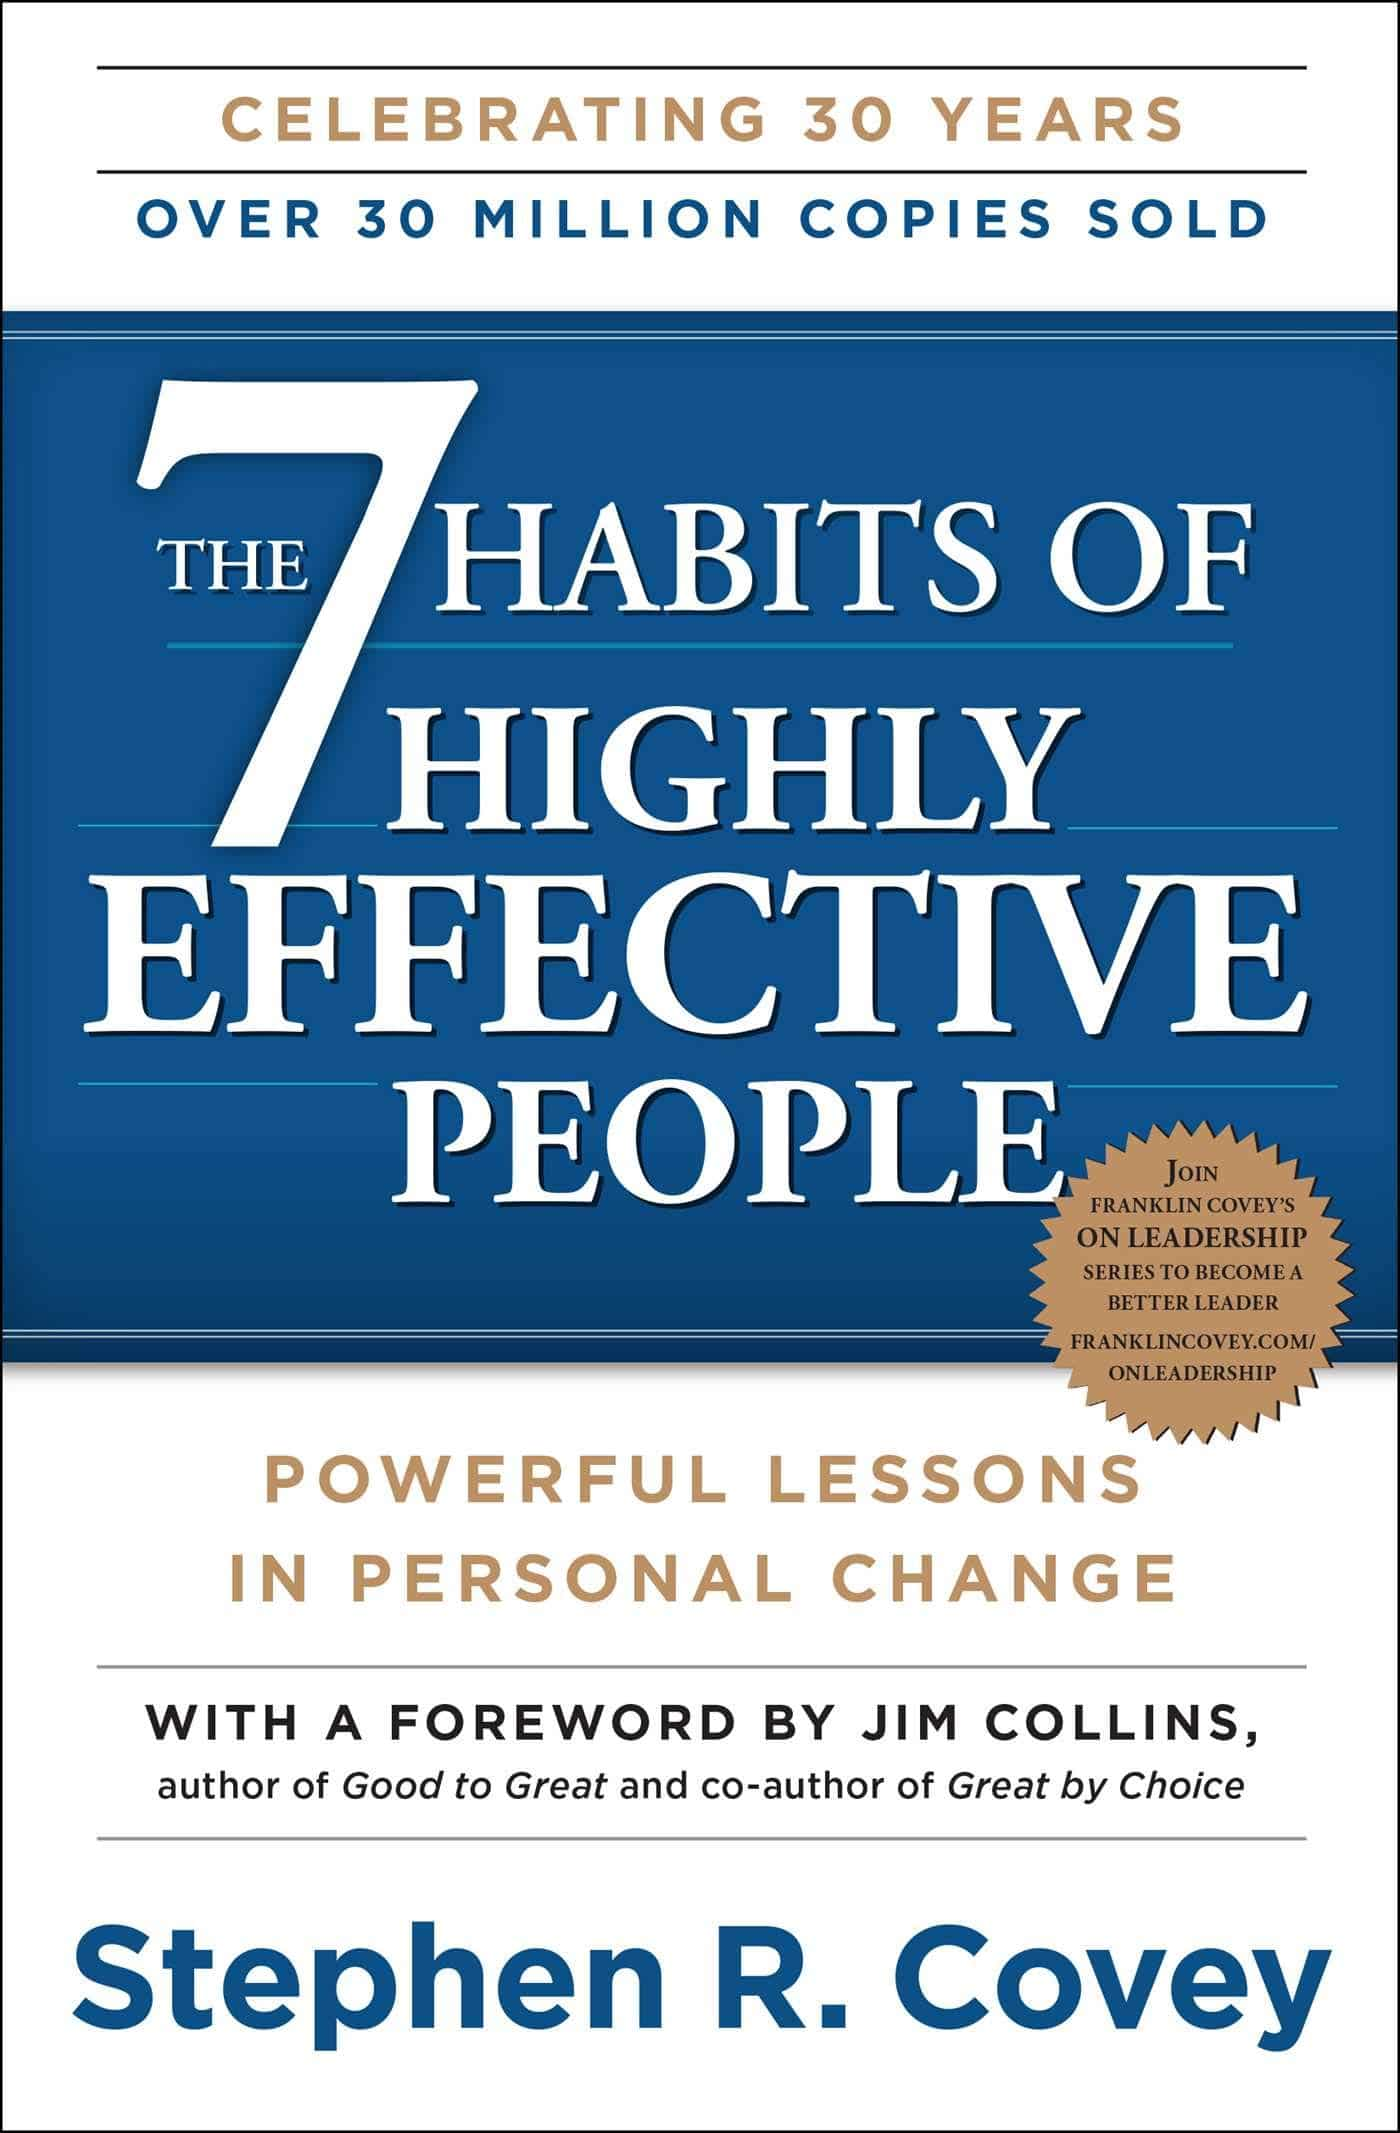 The 7 Habits of Highly Effective People: Powerful Lessons in Personal Change - Buchdeckel